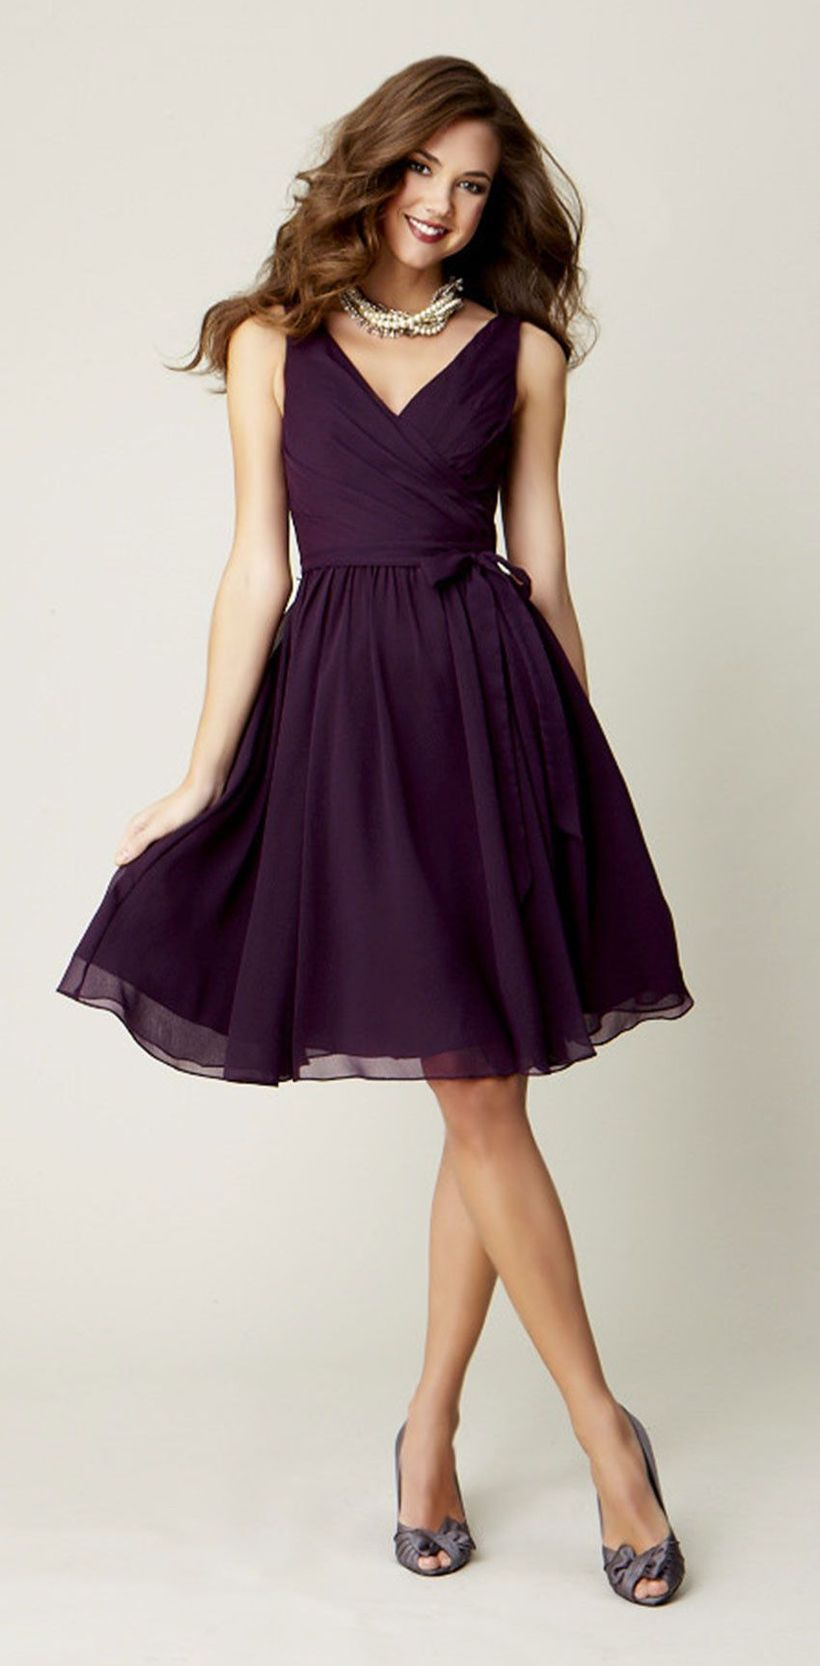 Gorgeous short bridesmaid dresses design ideas 32